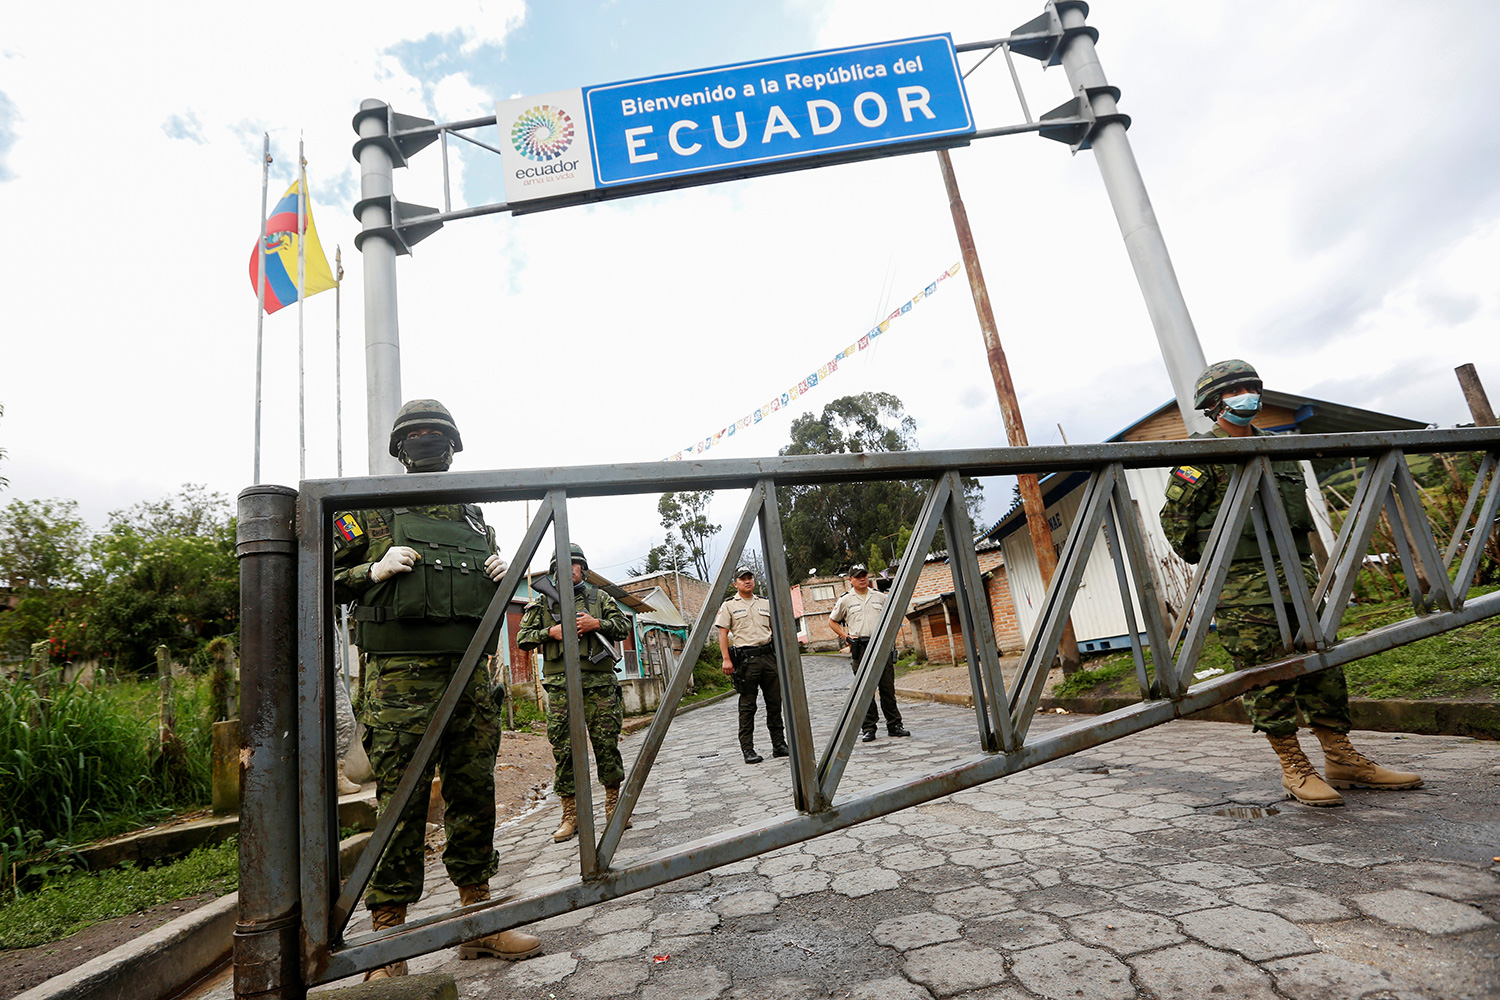 Soldiers on the Ecuadoran side of the border with Colombia, in Tufino, Ecuador, after their government announced the closure of borders to all foreign travelers due to coronavirus on March 15, 2020. The photo shows a border crossing with a large sign reading, Ecuador, and several soldiers in the frame. REUTERS/Daniel Tapia